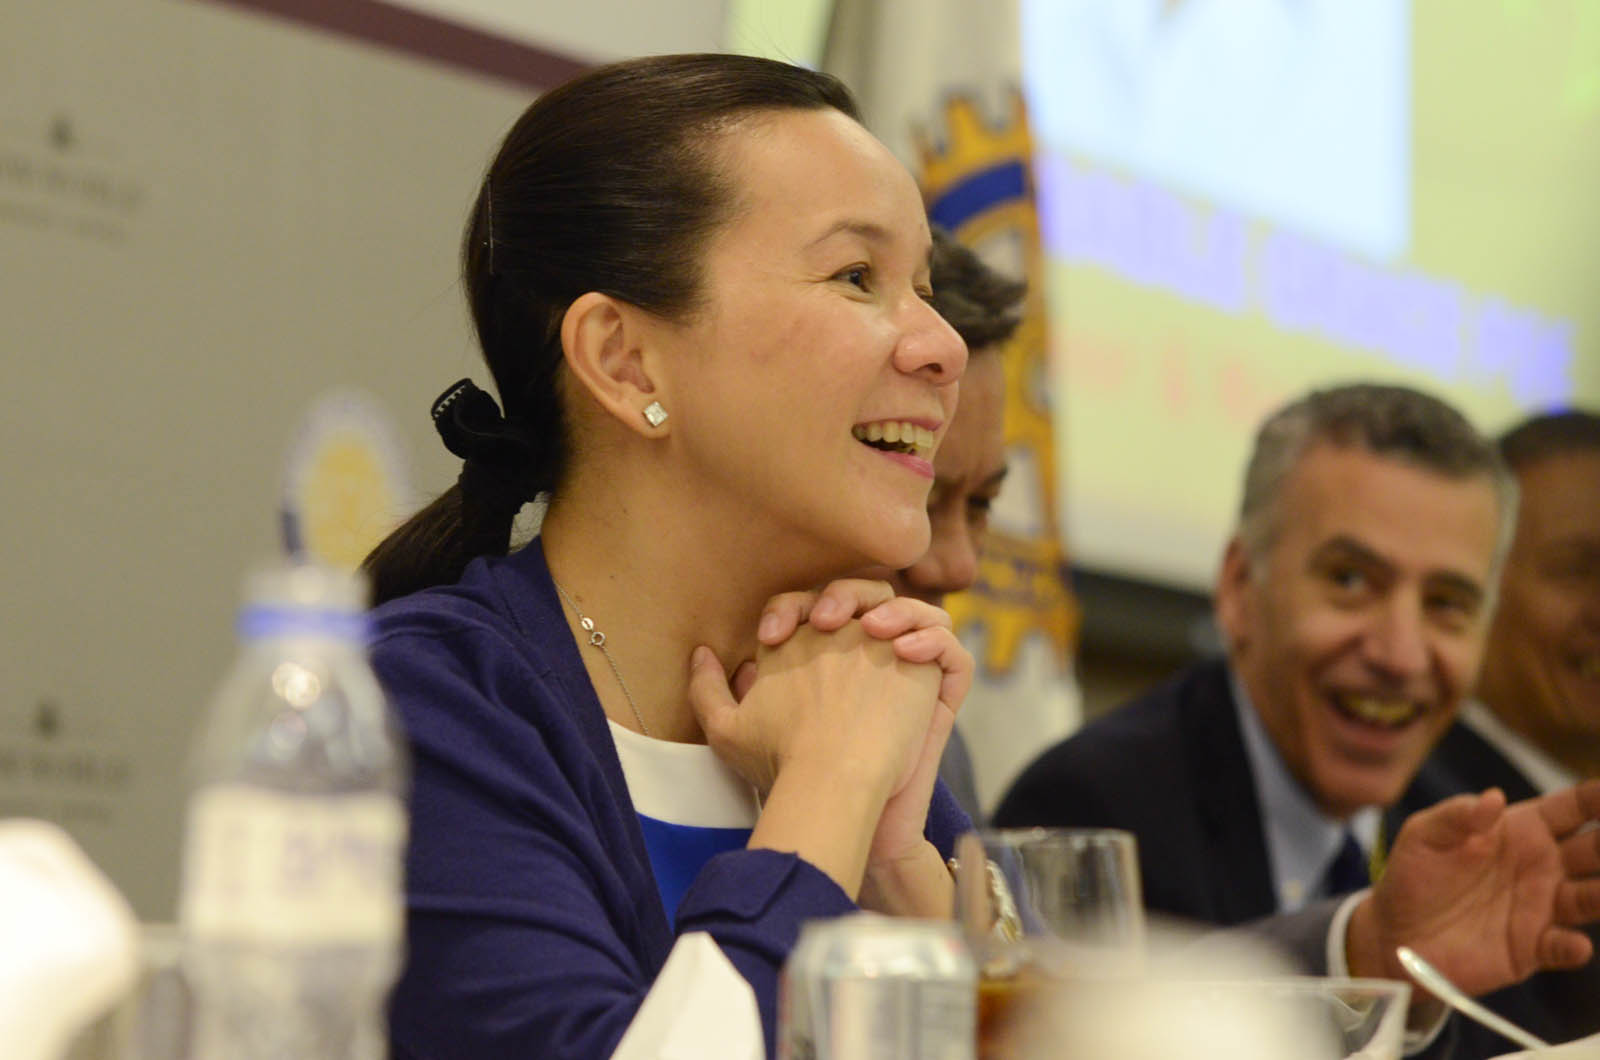 US STANCE. Senator Grace Poe says the Philippines cannot rely on the US to defend it in its maritime dispute against China. File photo by Alecs Ongcal/Rappler